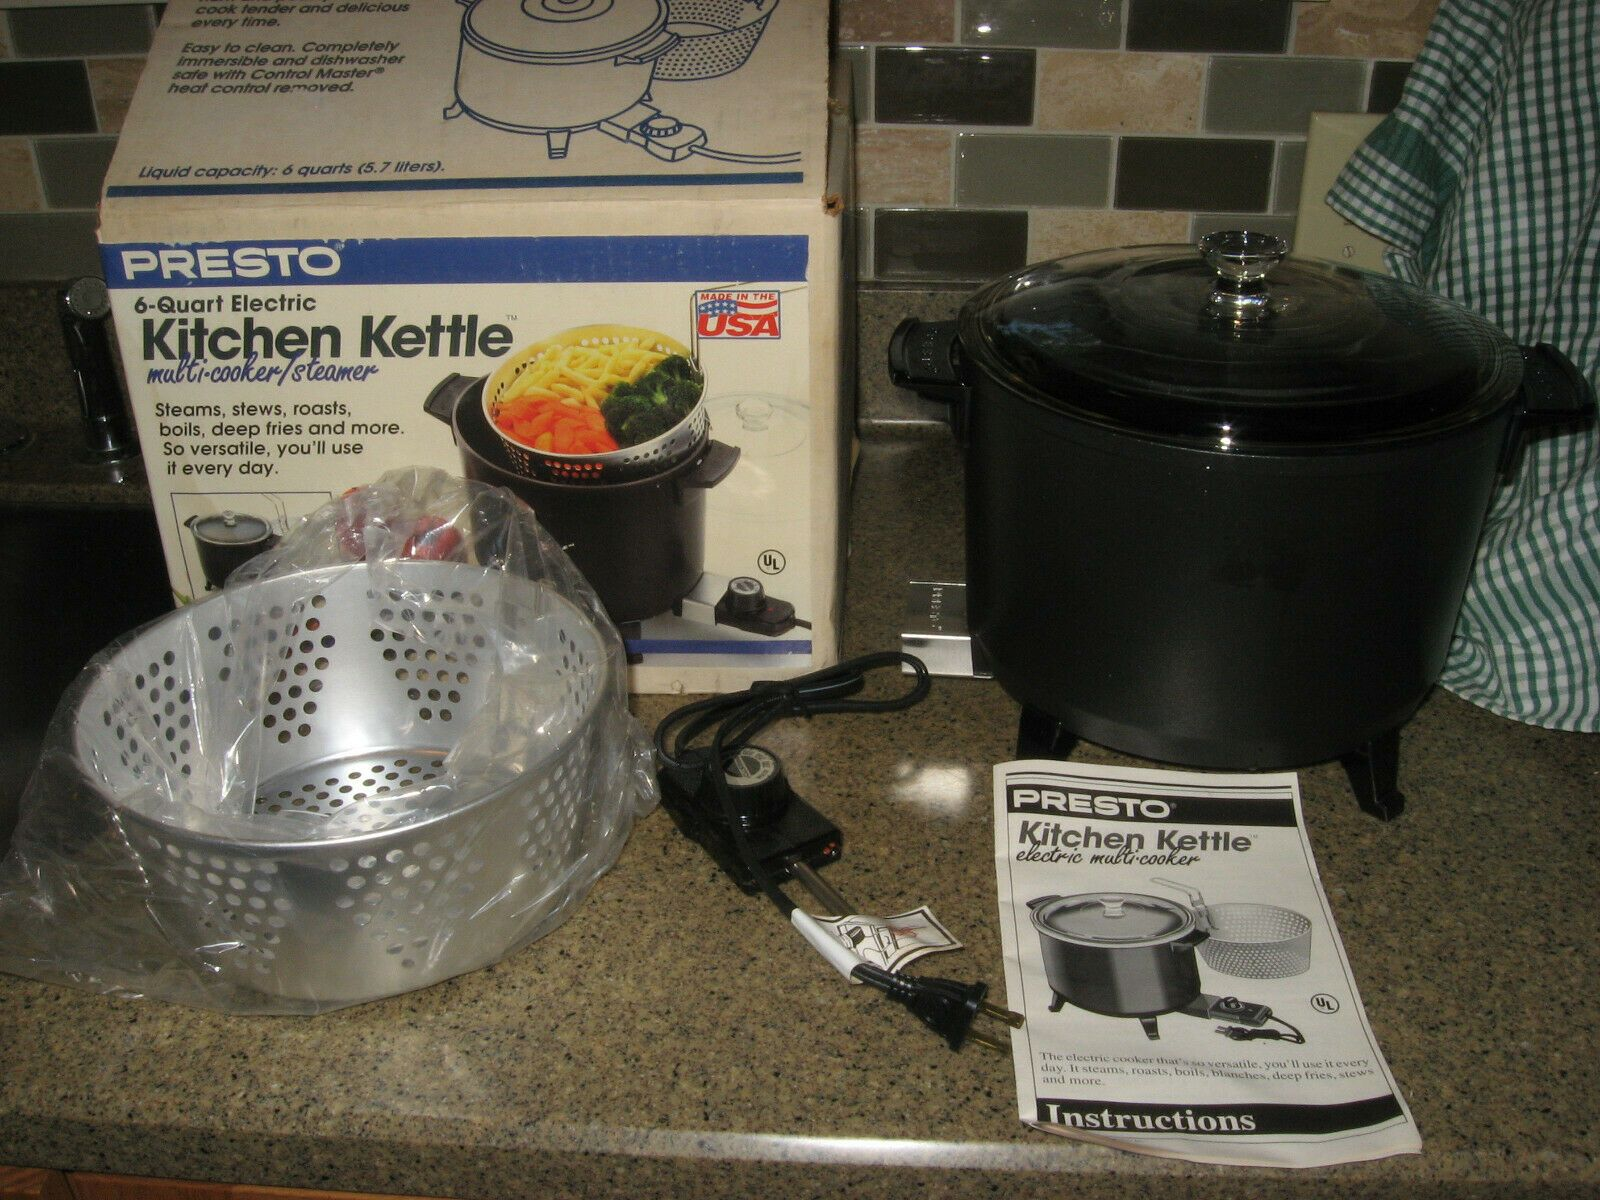 New Old Stock Presto Kitchen Kettle Electric Deep Fryer Multi